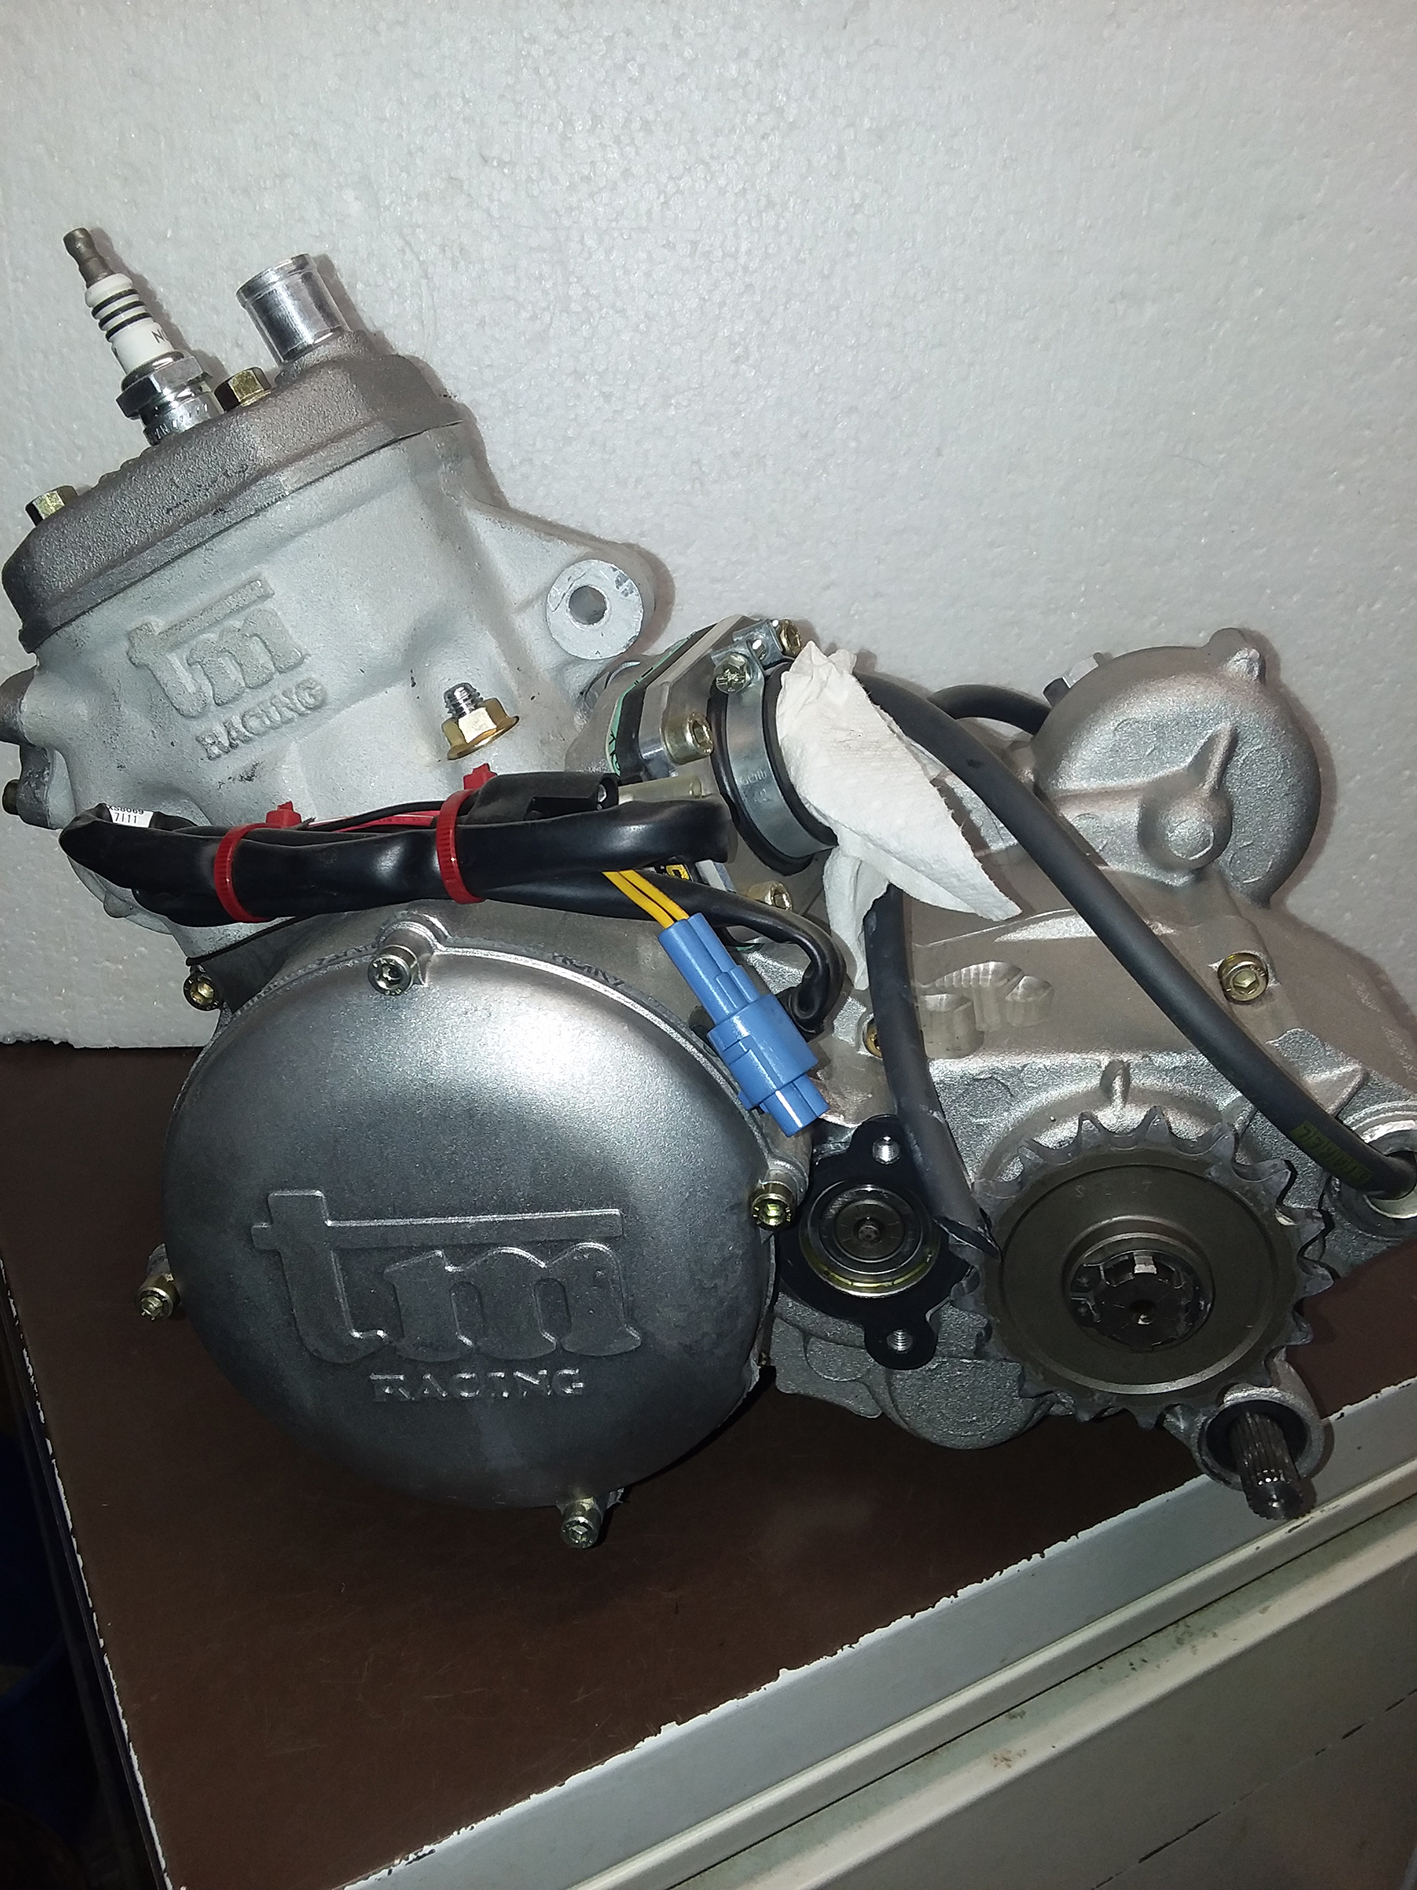 TM 85cc engine